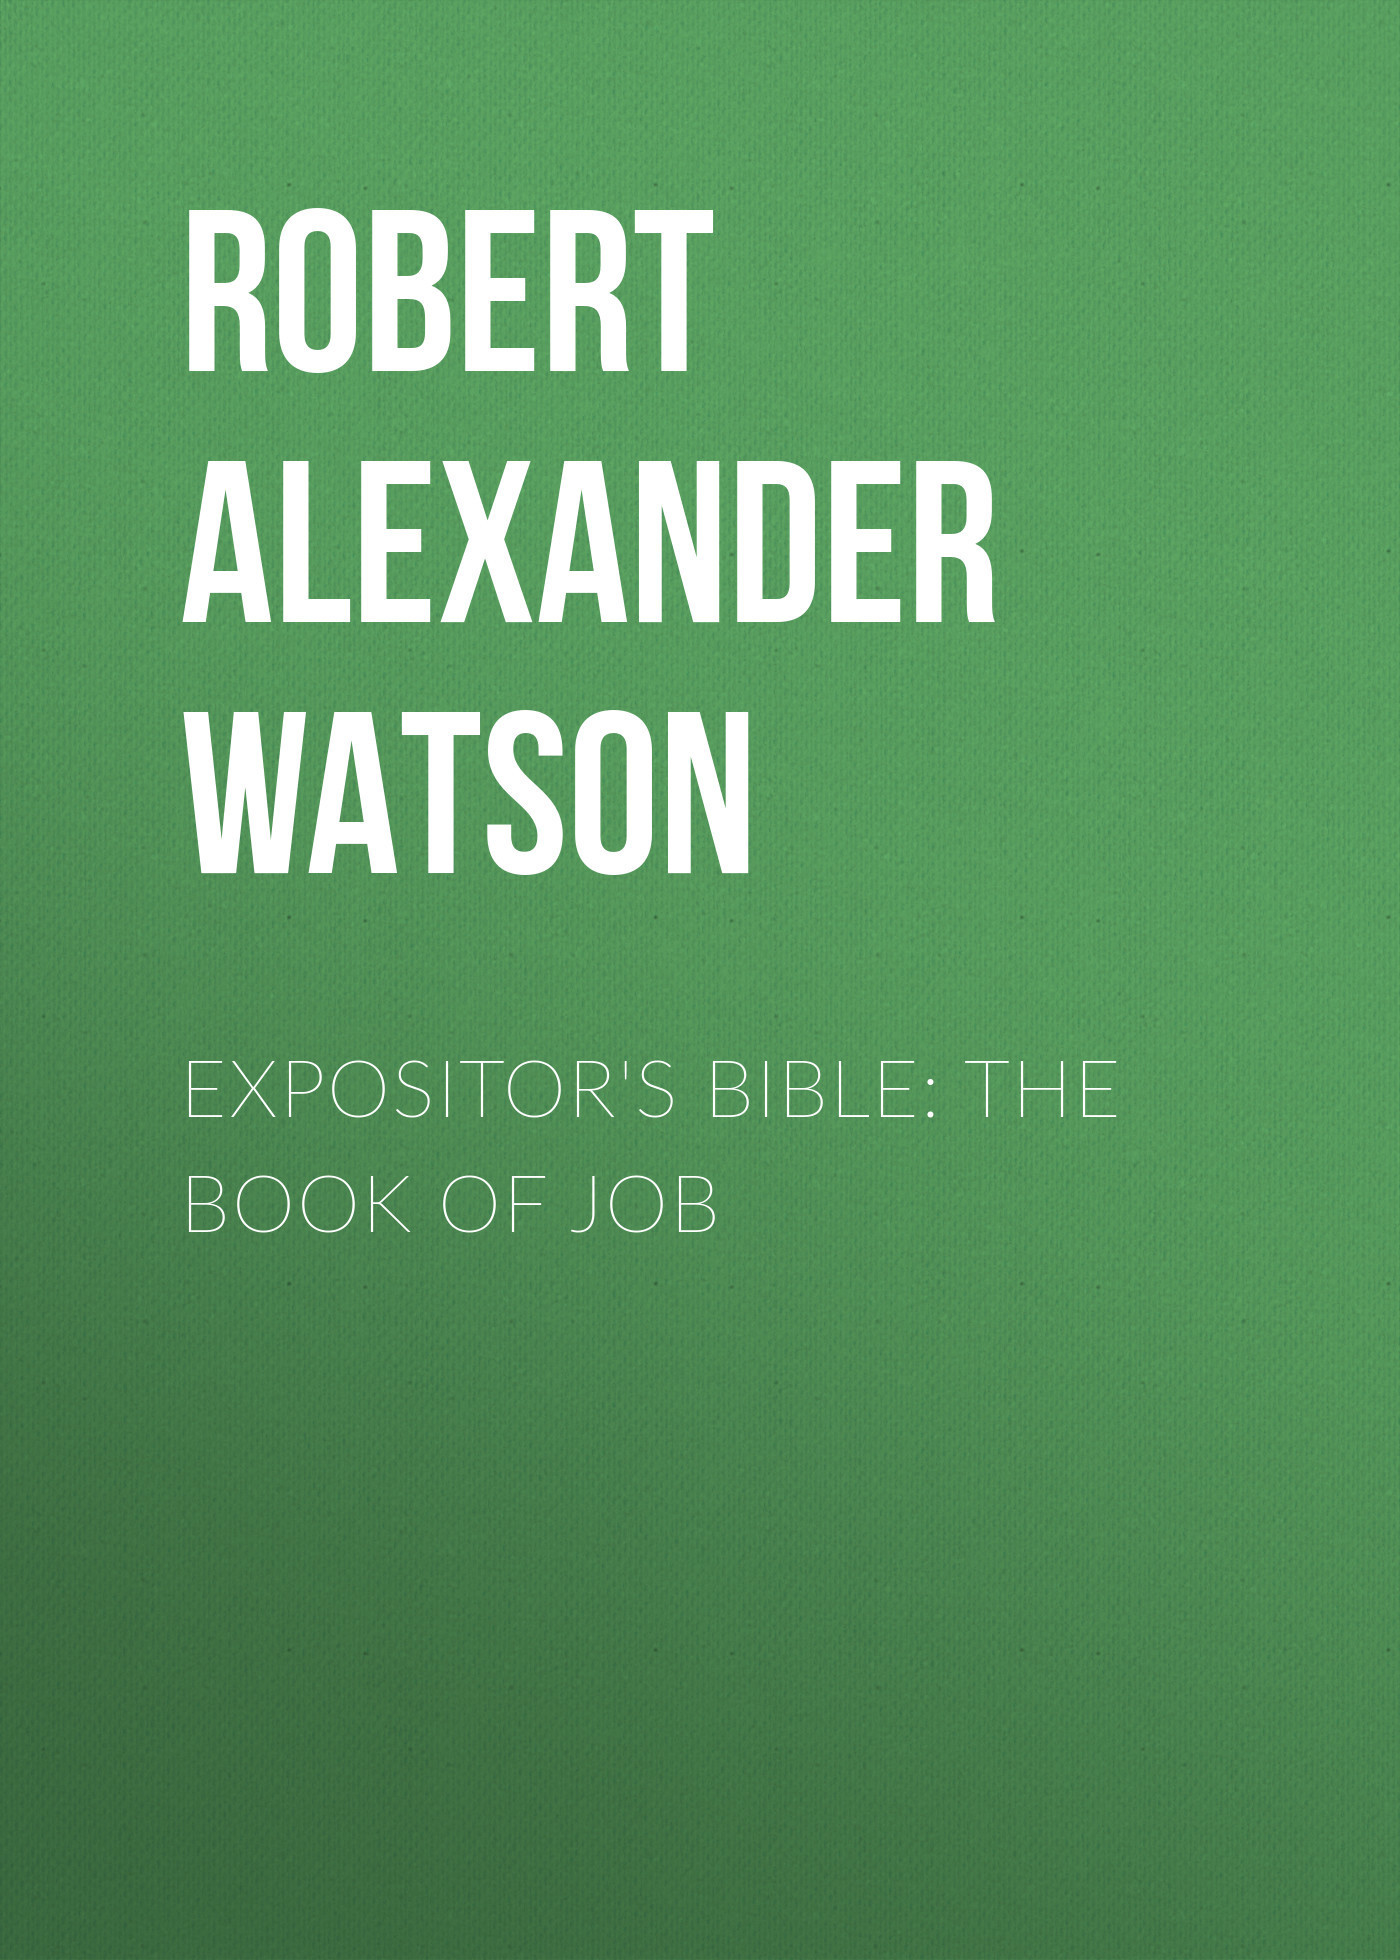 Robert Alexander Watson Expositor's Bible: The Book of Job